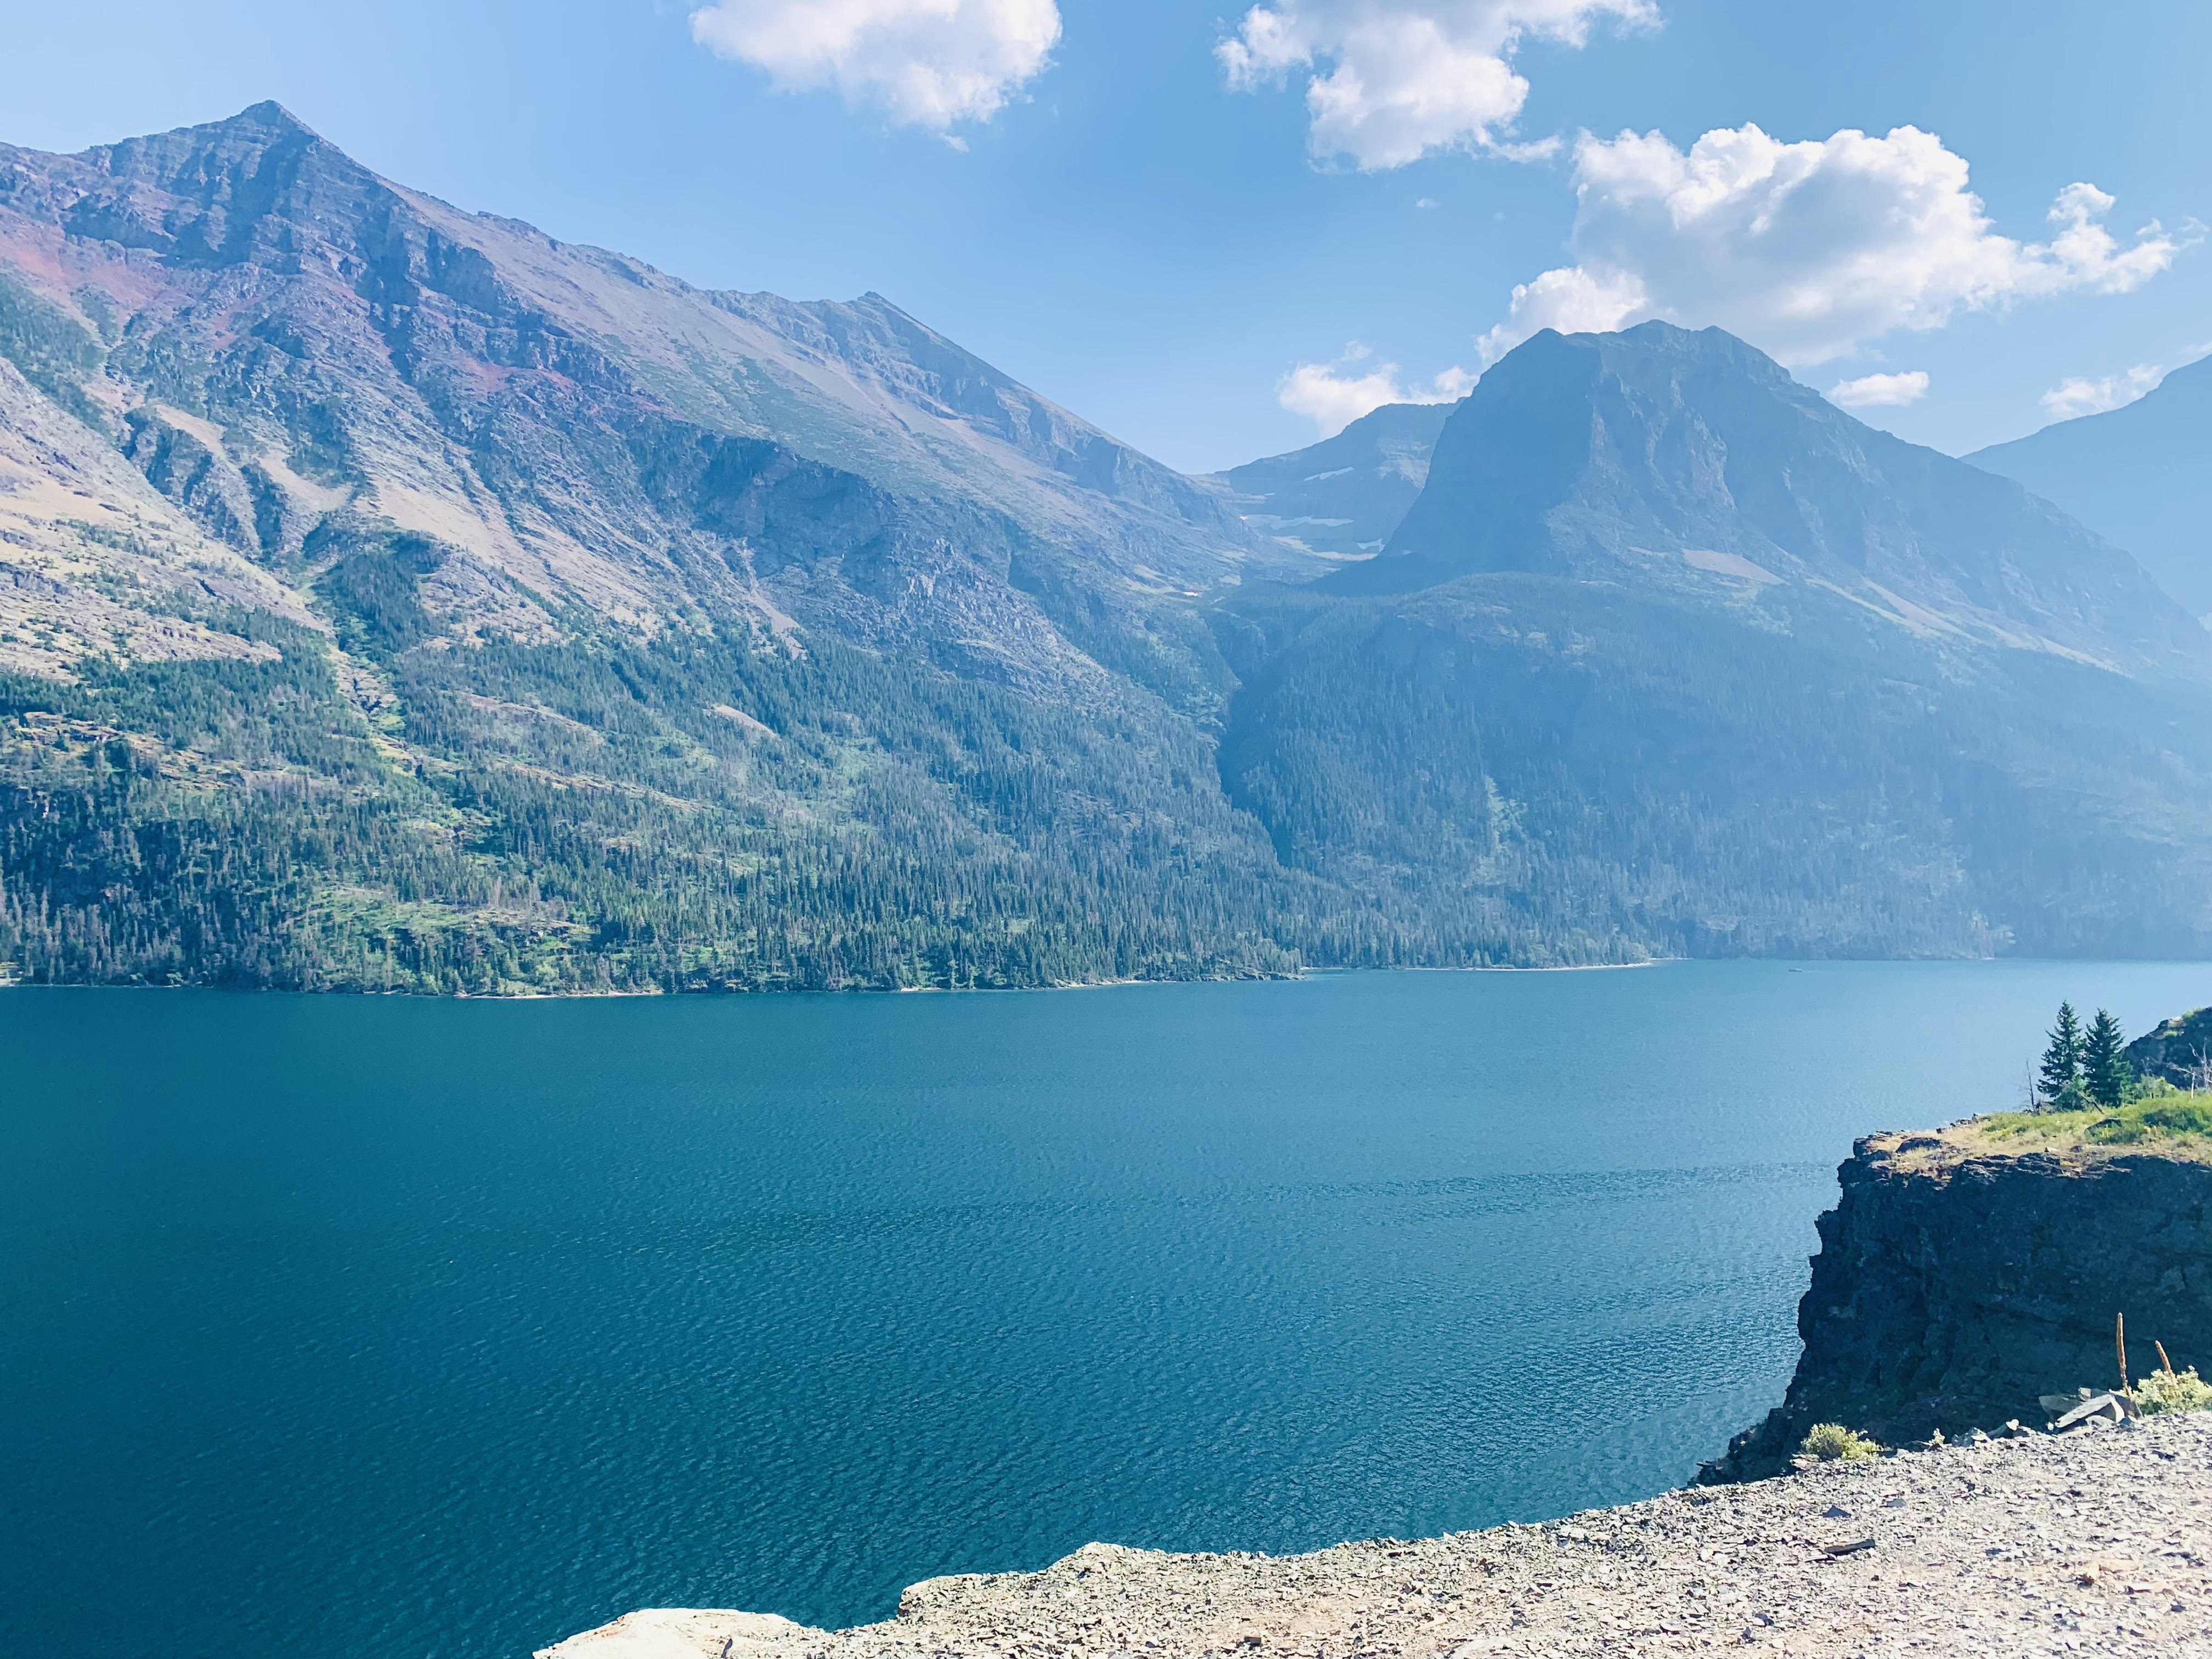 View of St. Mary Lake from Sun Point; one of the best stops on Going to the Sun Road